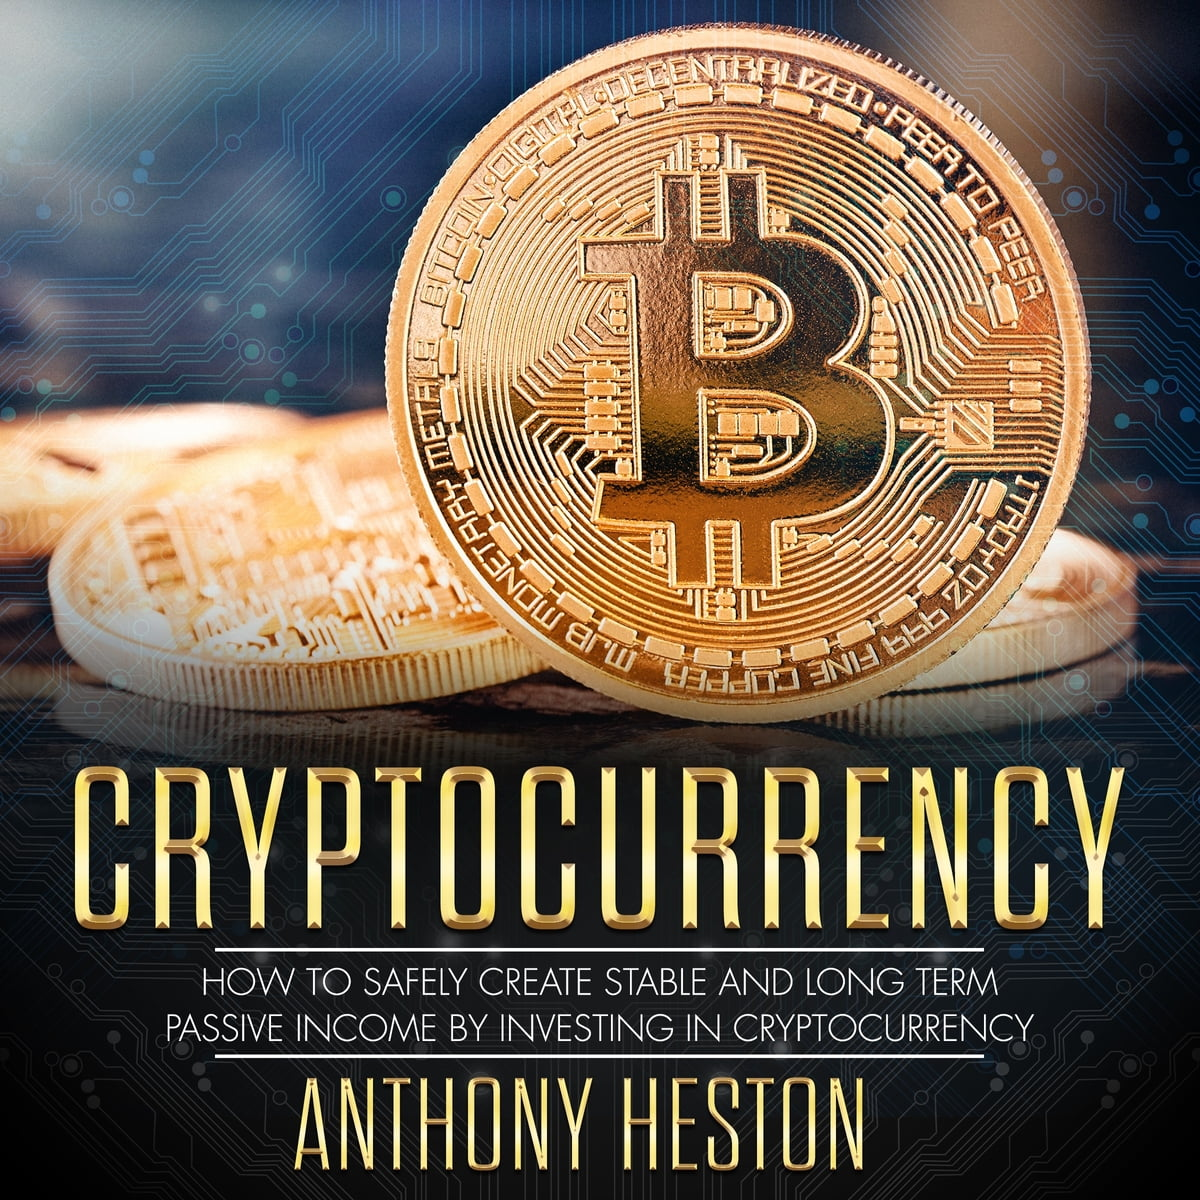 investing in cryptocurrency long term